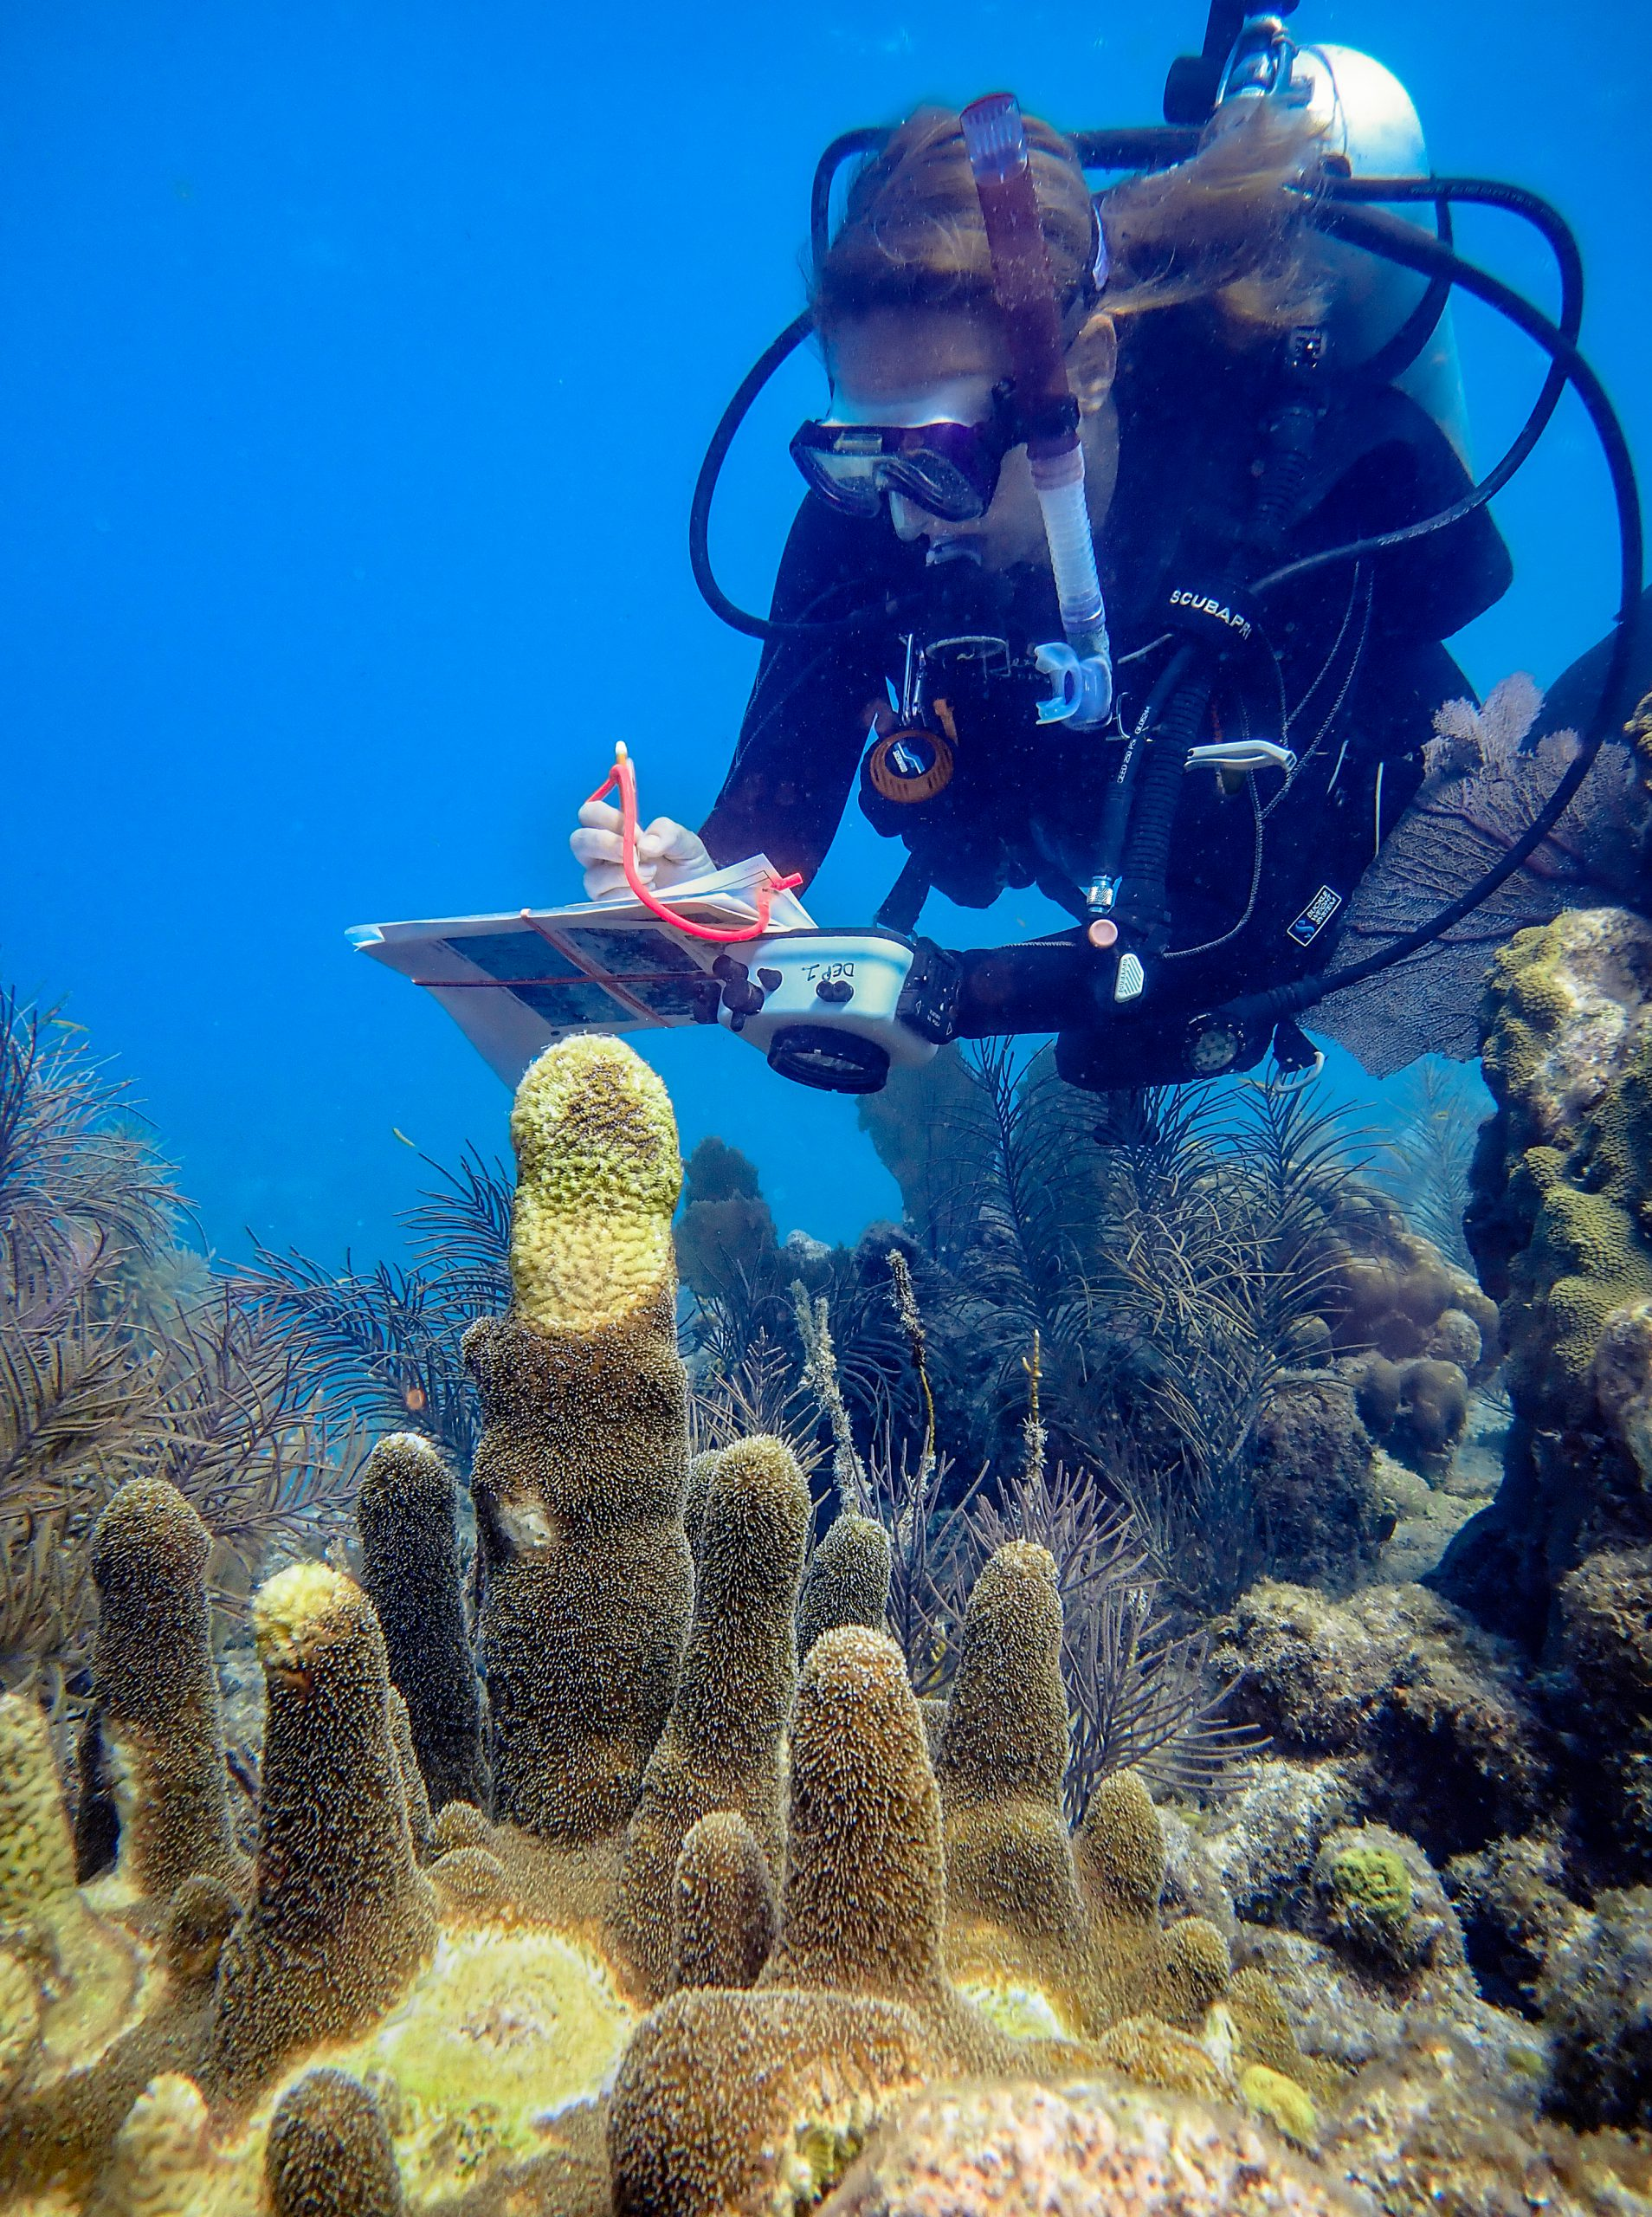 Research diver documents stony coral tissue loss disease in pillar coral along Florida Reef Tract, 2019.